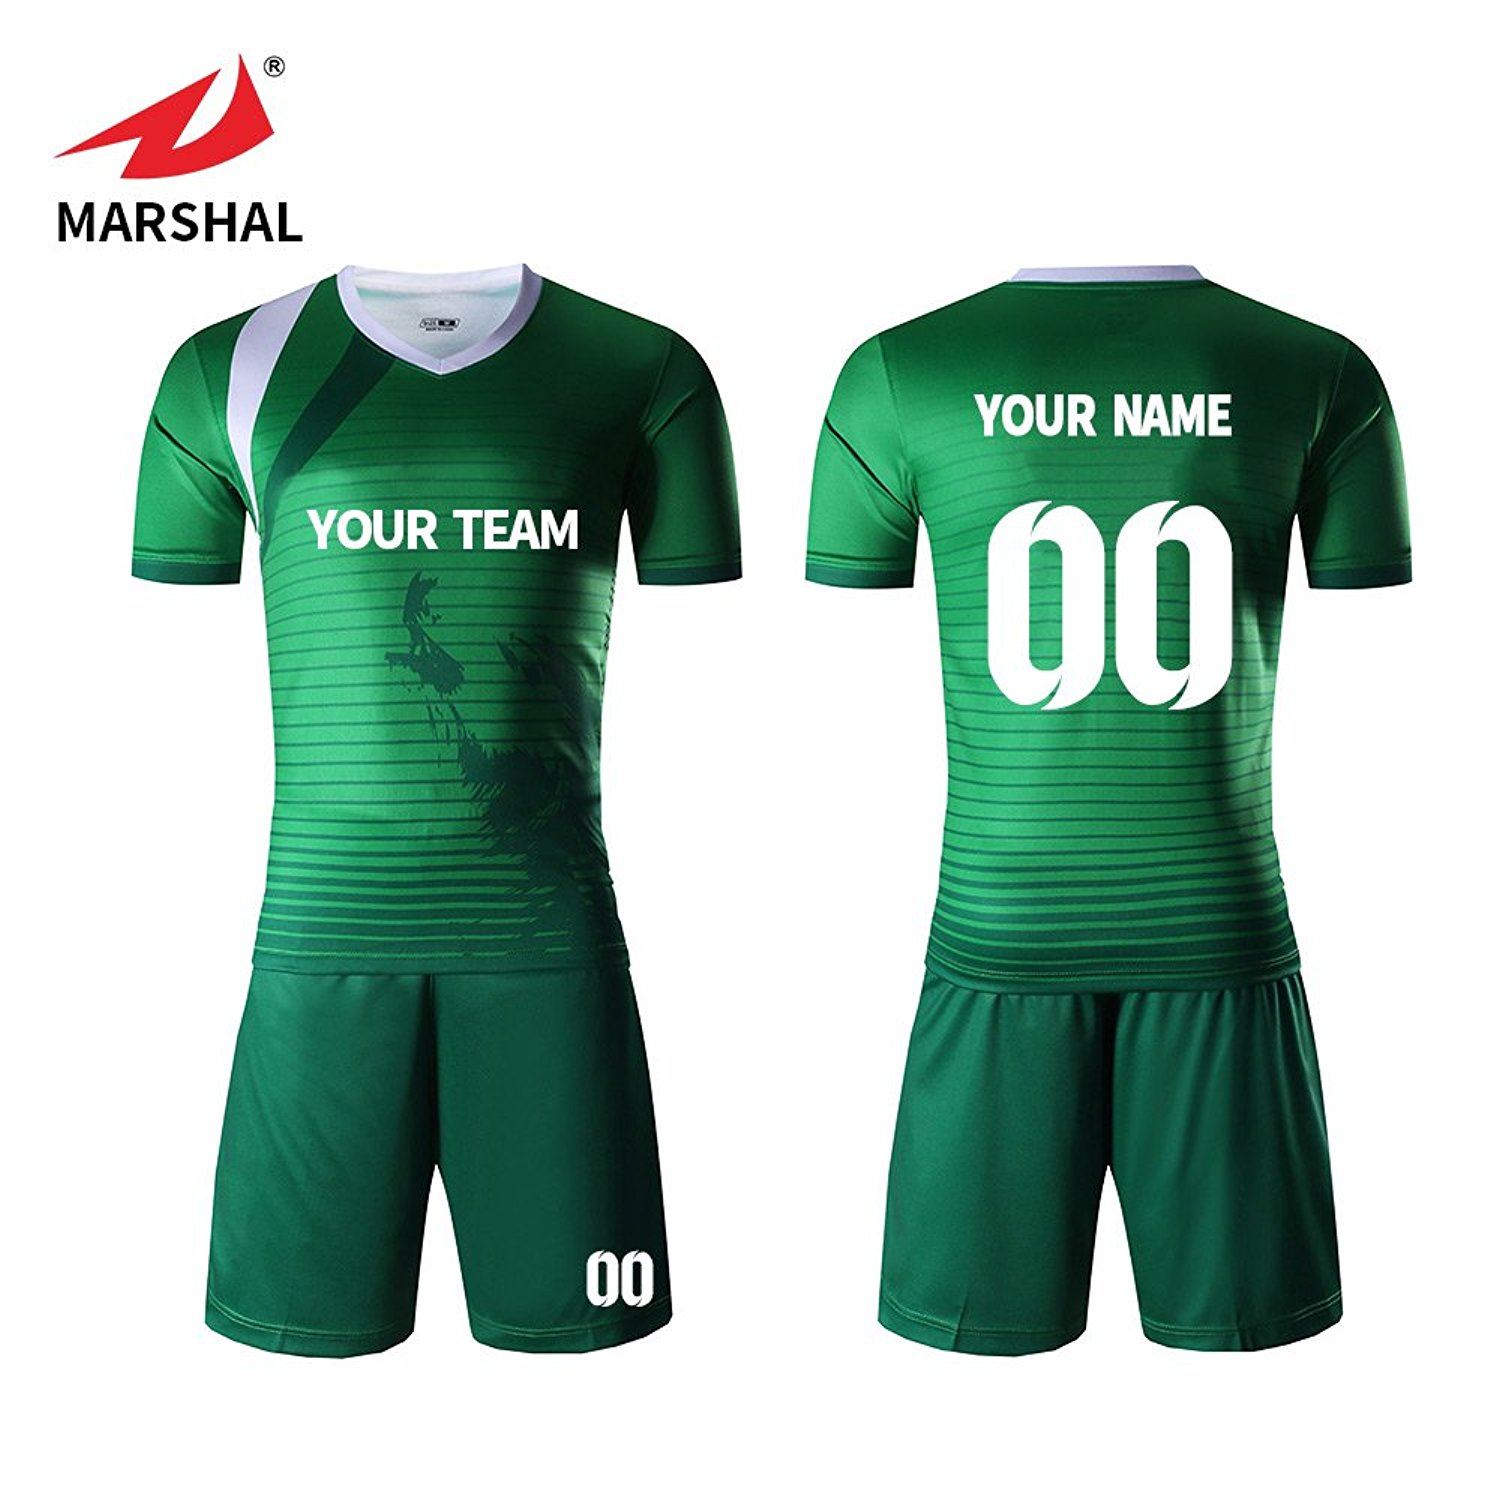 35a85c687 Marshal Jersey Custom Soccer Uniforms Green Pattern Soccer Team Jersey For  Men Personal Design